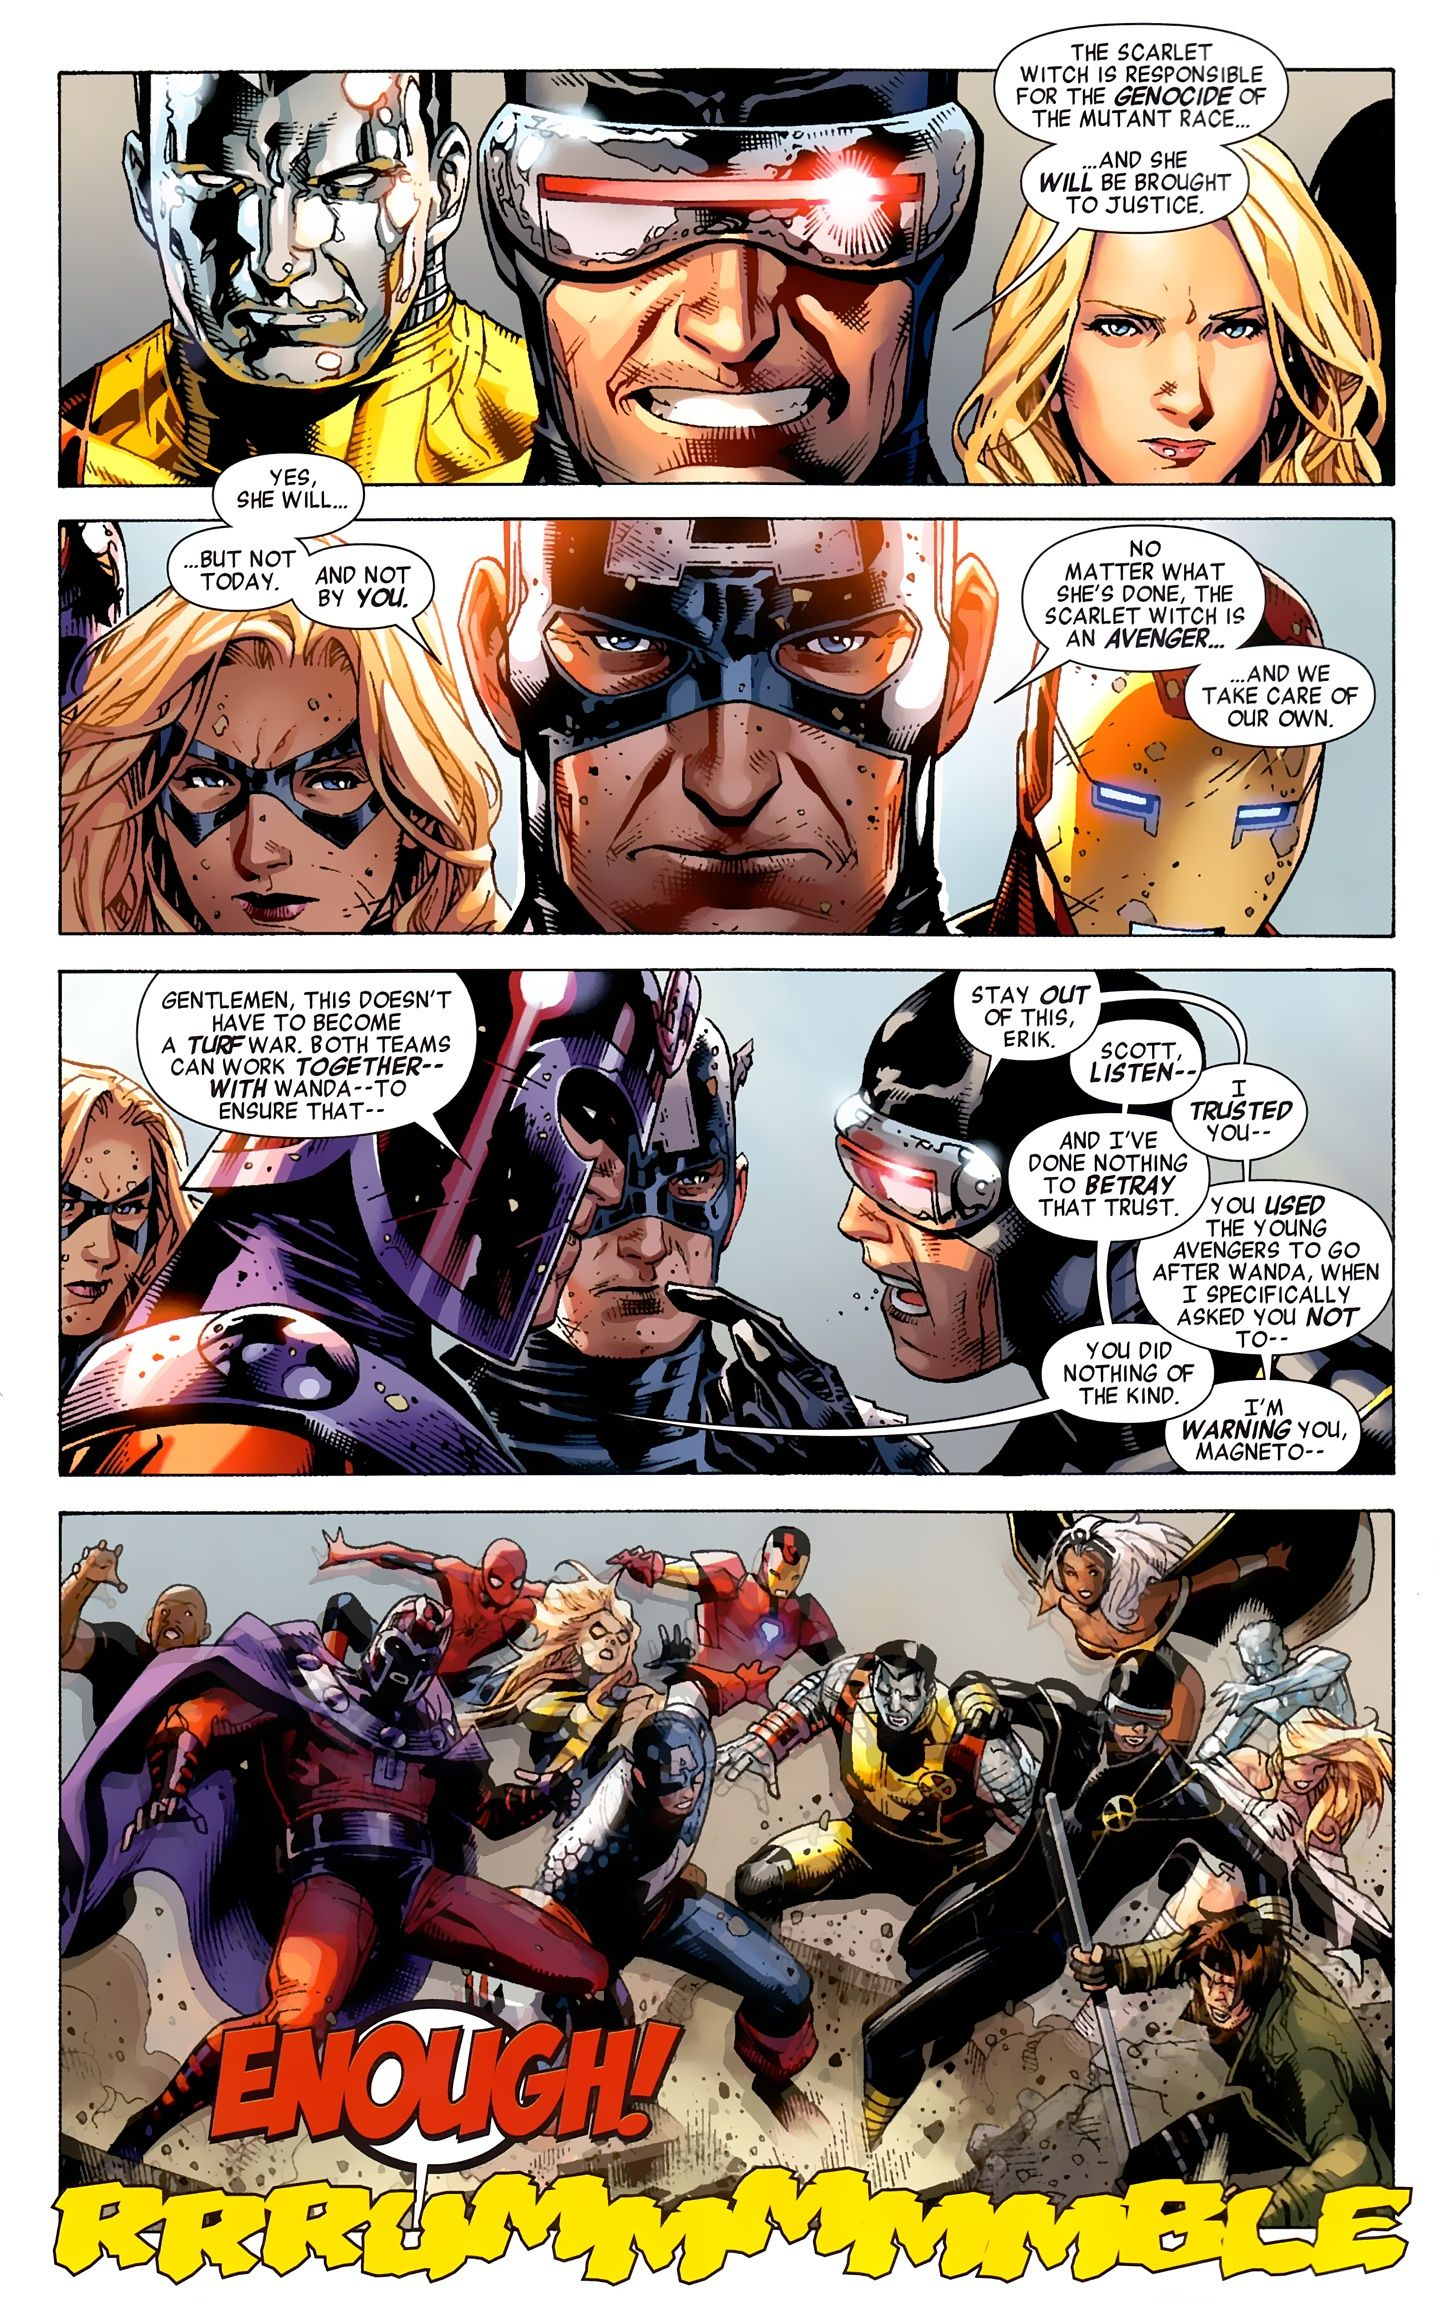 Avengers The Children S Crusade Issue 7 Read Avengers The Children S Crusade Issue 7 Comic Online In High Quality Comics Avengers Children S Crusade